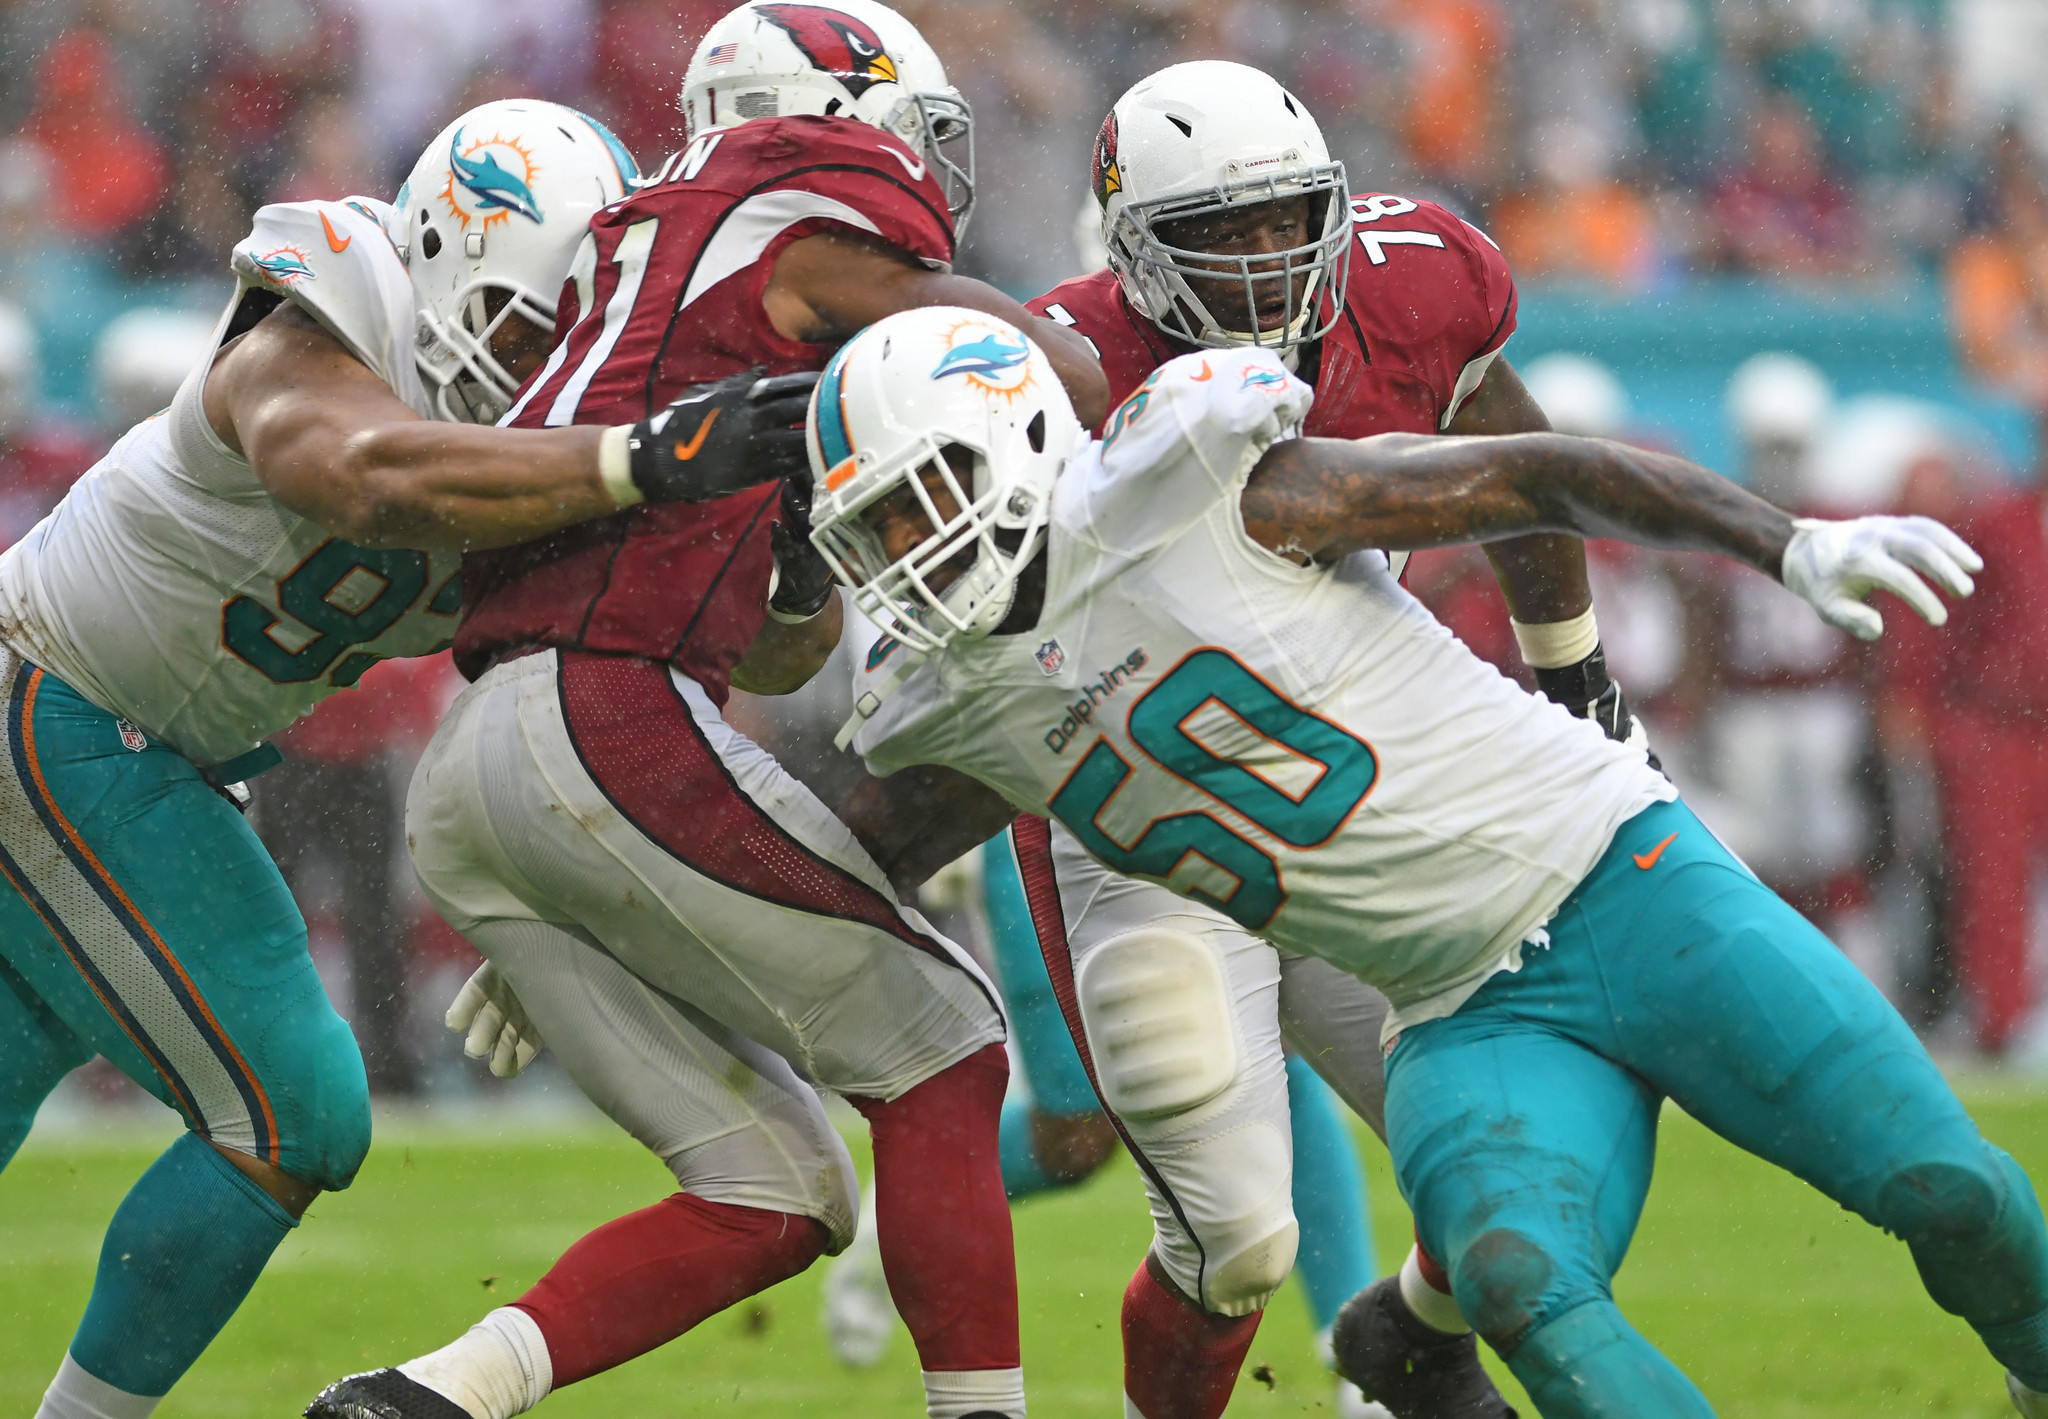 Fl-sp-dolphins-andre-branch-re-signing-20170308